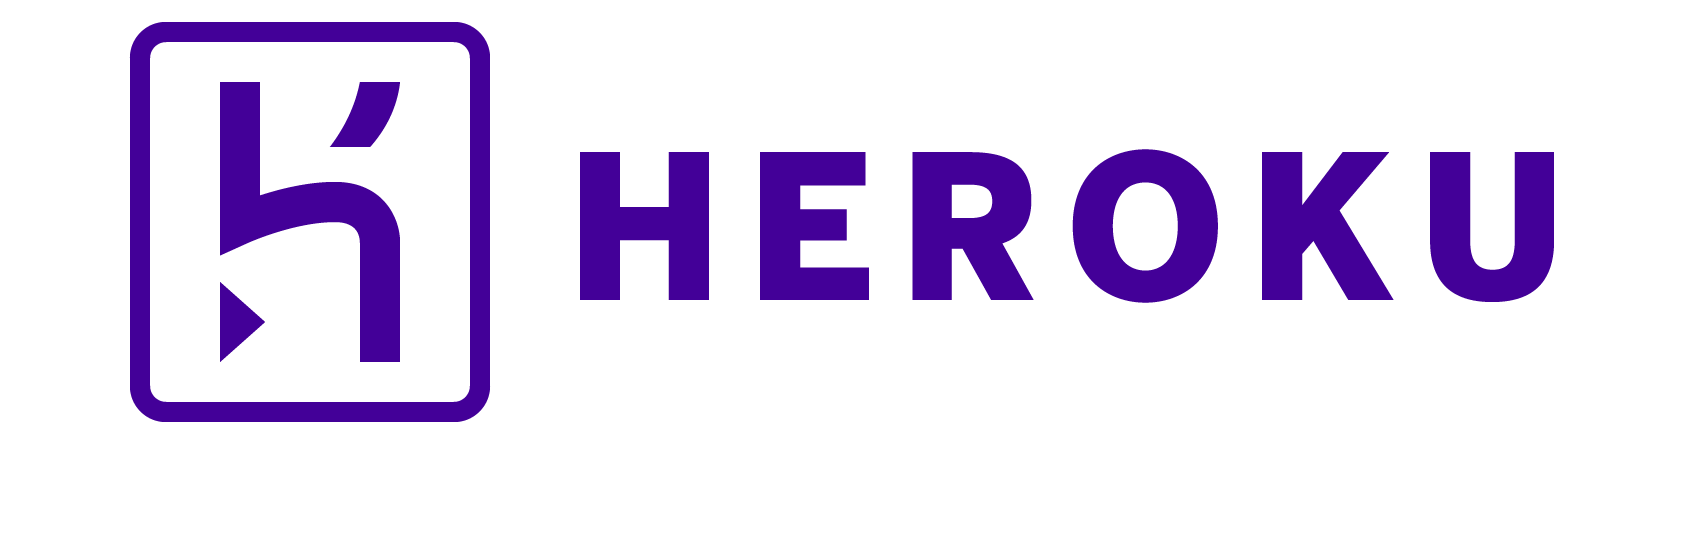 Heroku logotype horizontal purple cropped